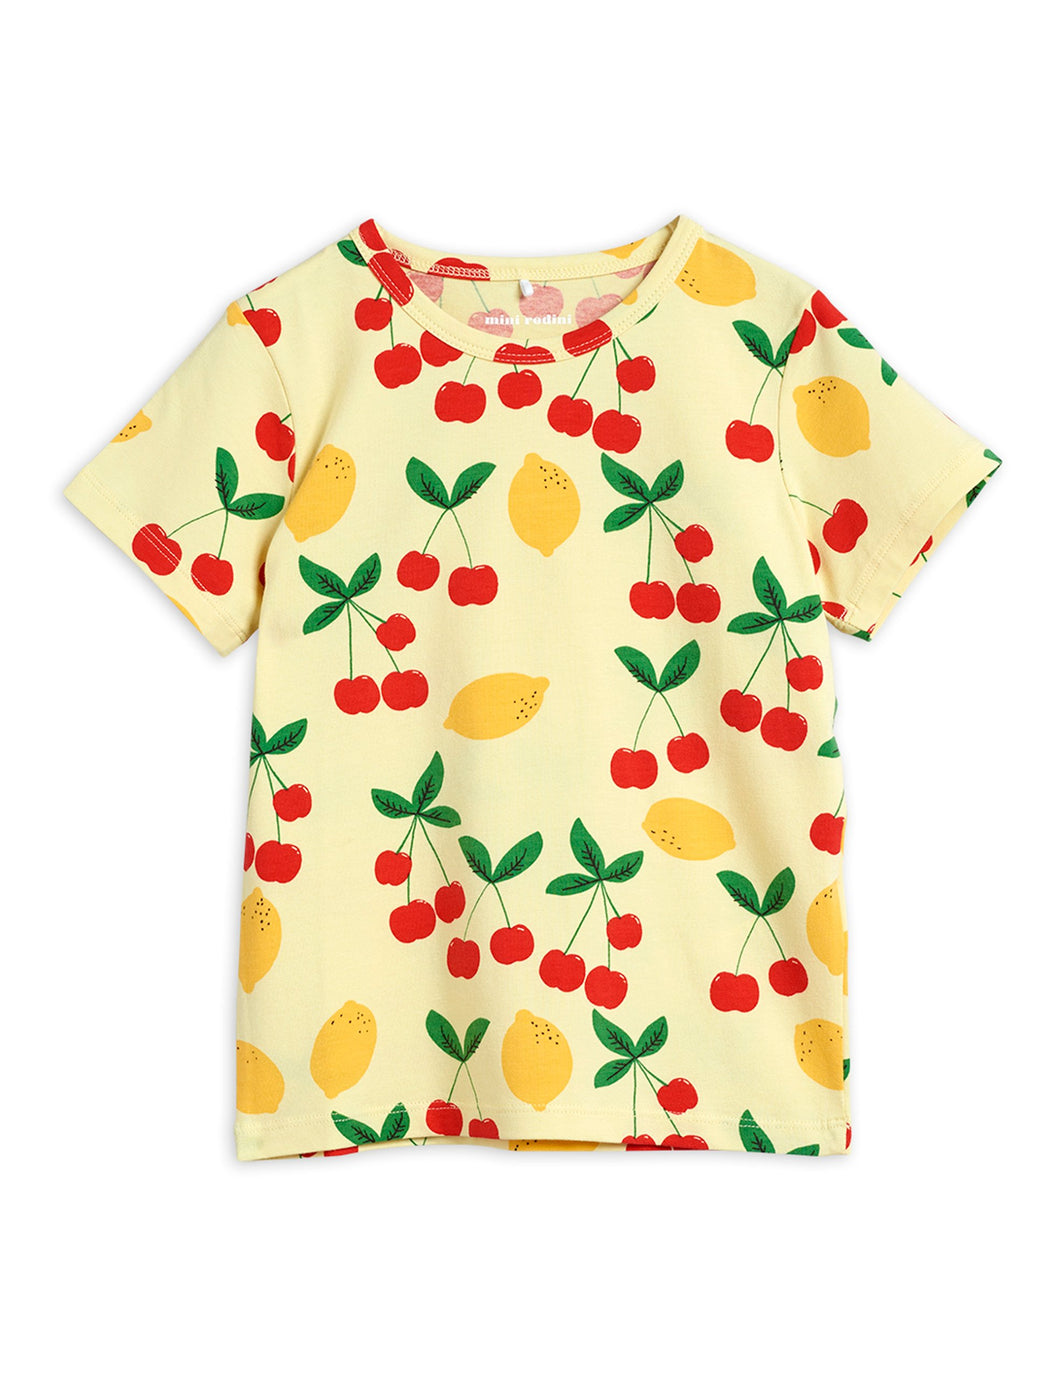 Cherry Lemonade T-Shirt